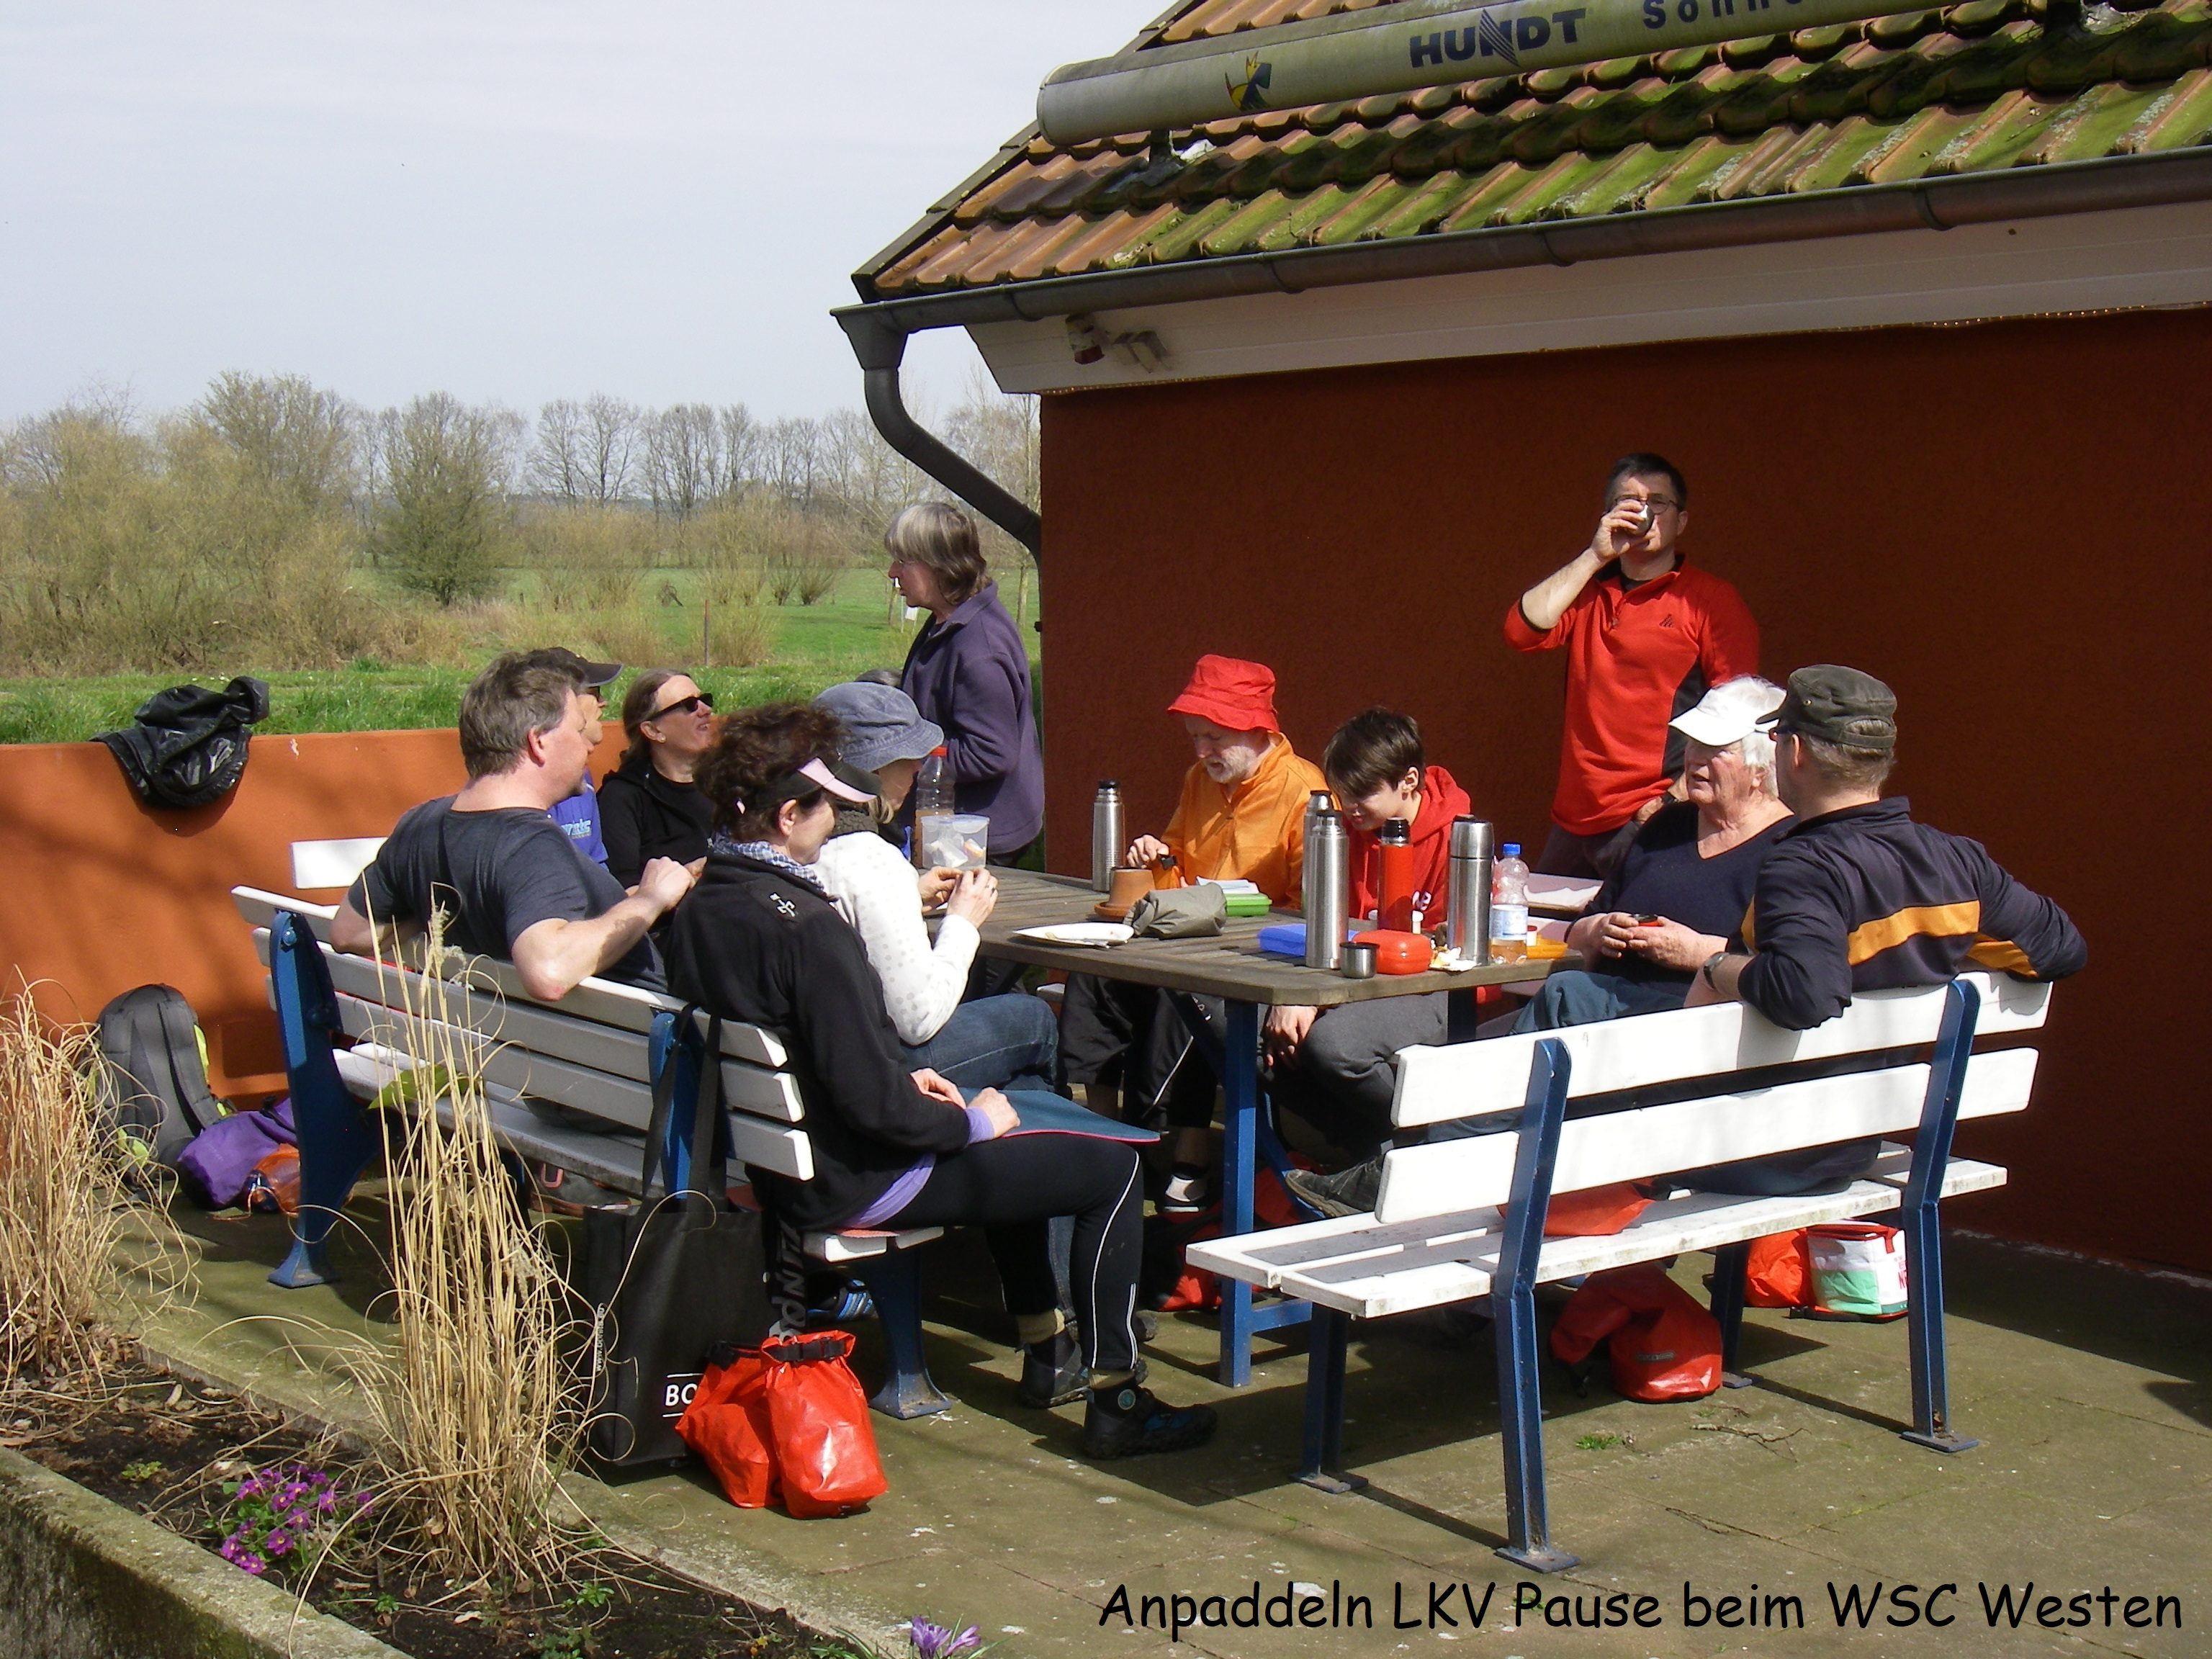 Anpappdeln LKV Pause in Westen